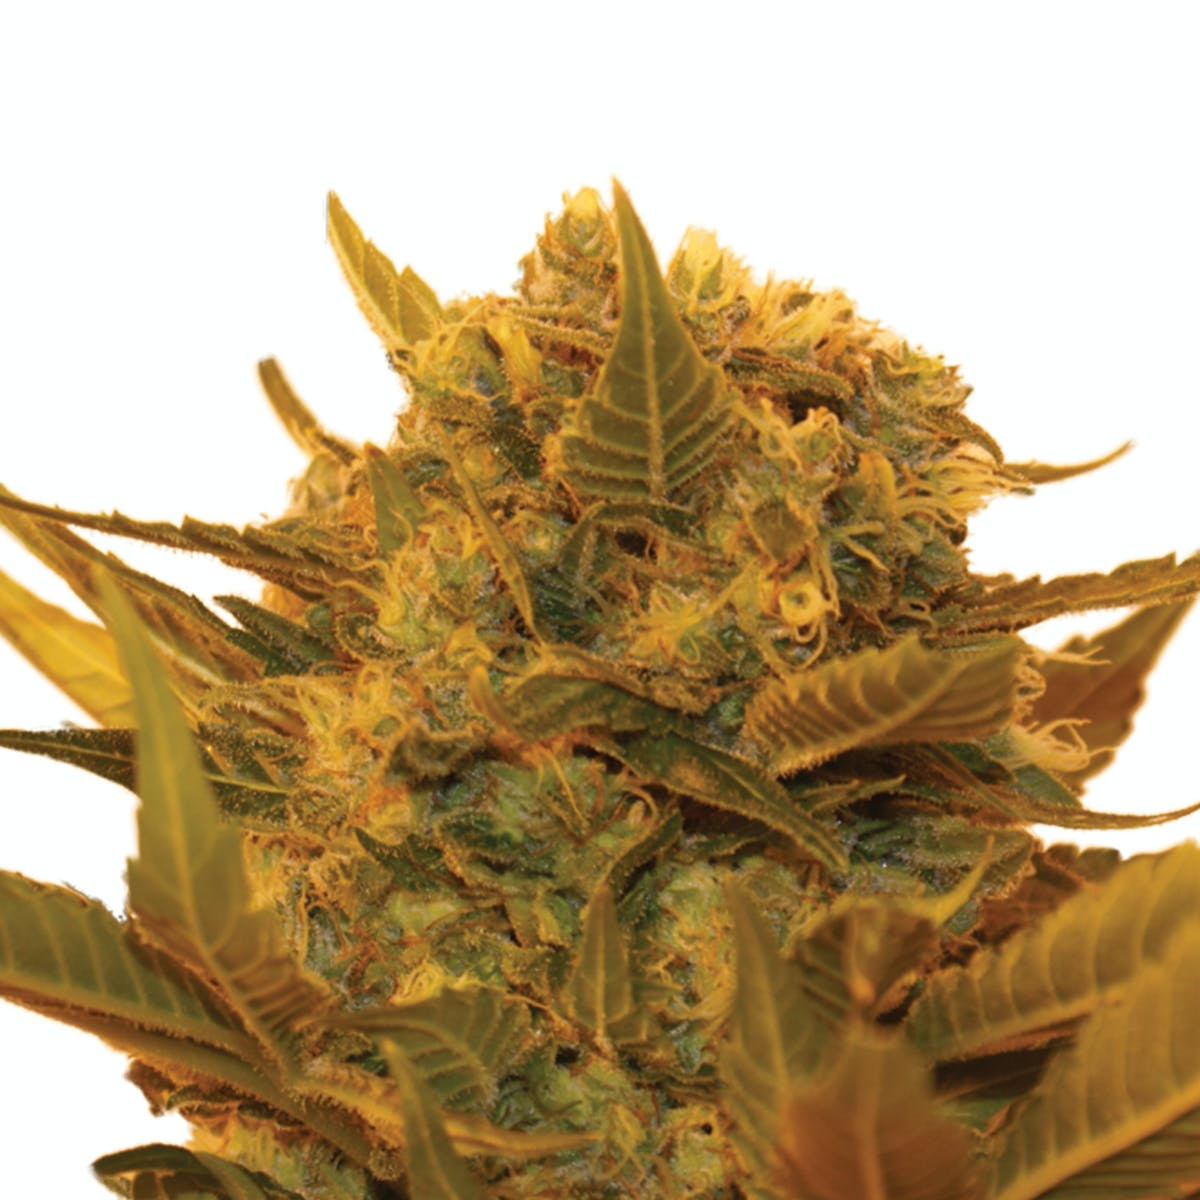 Resin Seeds | Featured Products & Details | Weedmaps